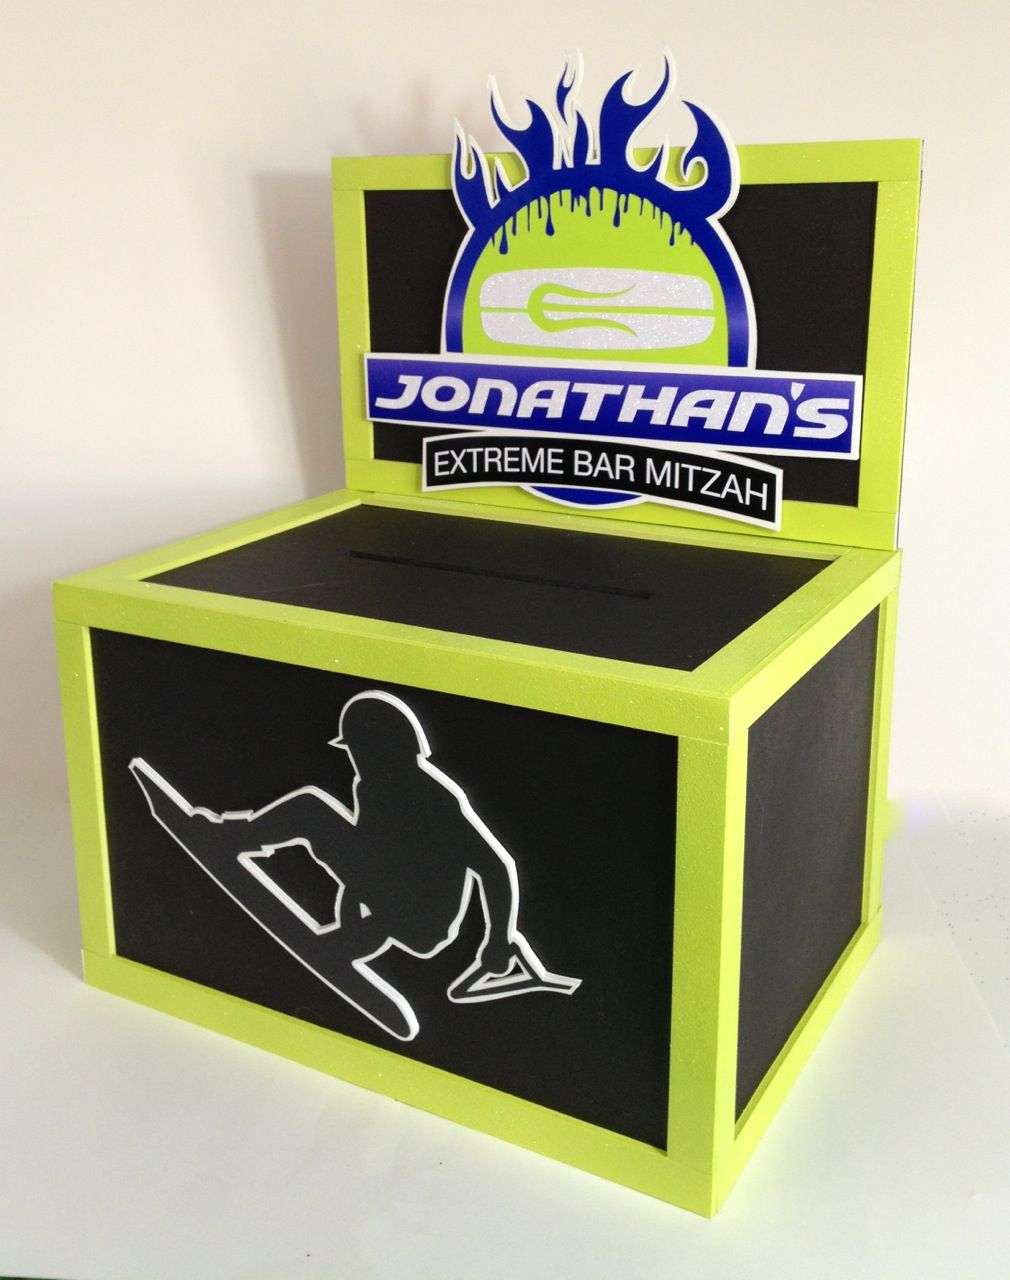 Bar Mitzvah Gift Card Box with a cool logo.#extremebarmitzvah